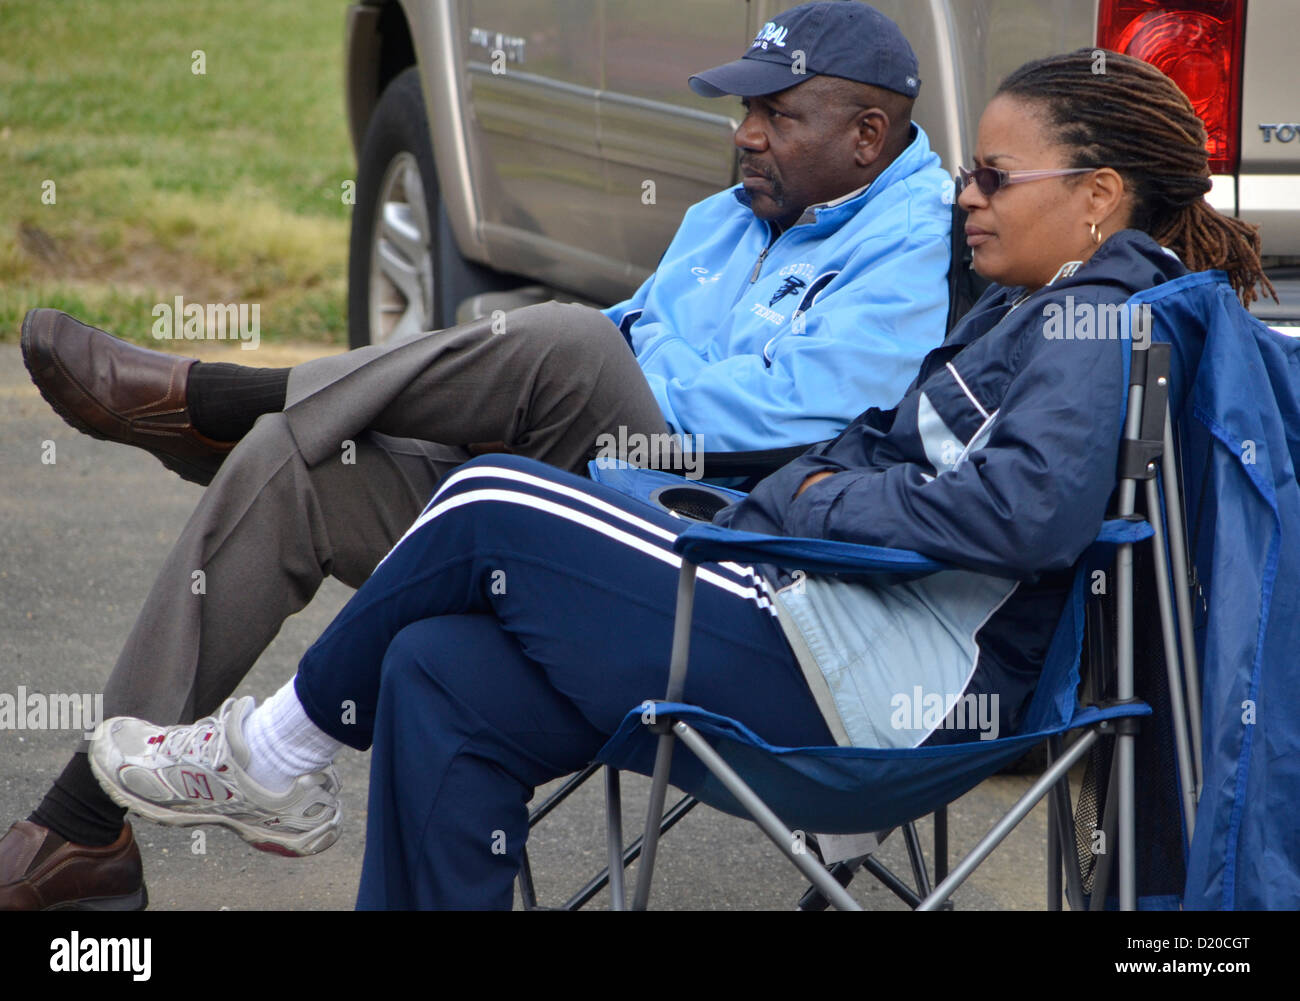 Couple watching a high school,tennis match from the parking lot - Stock Image